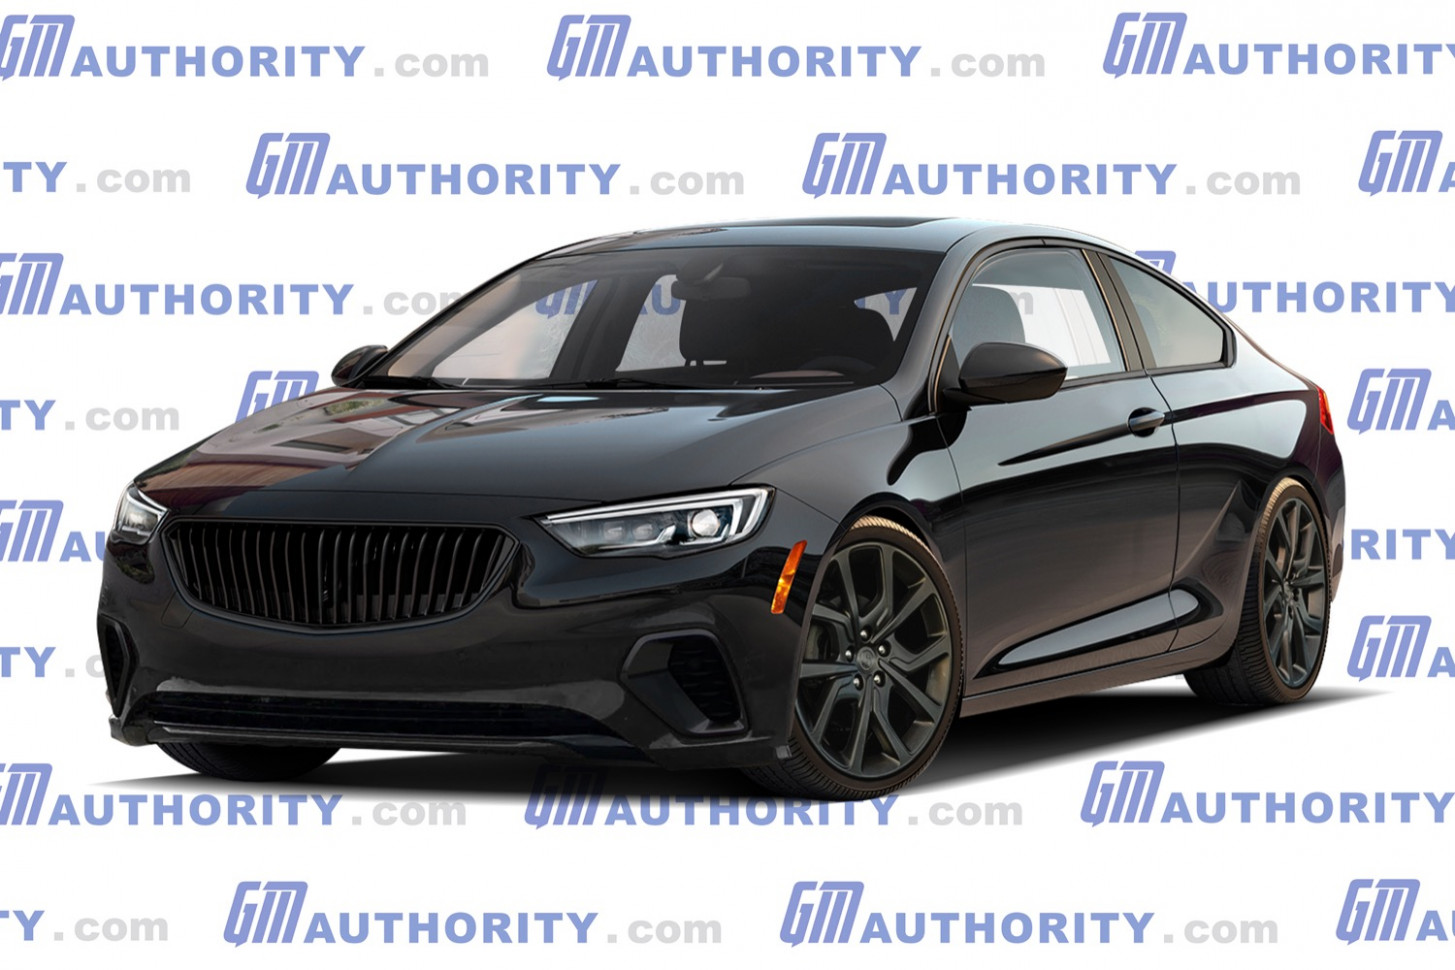 Redesign 2022 Buick Gnx